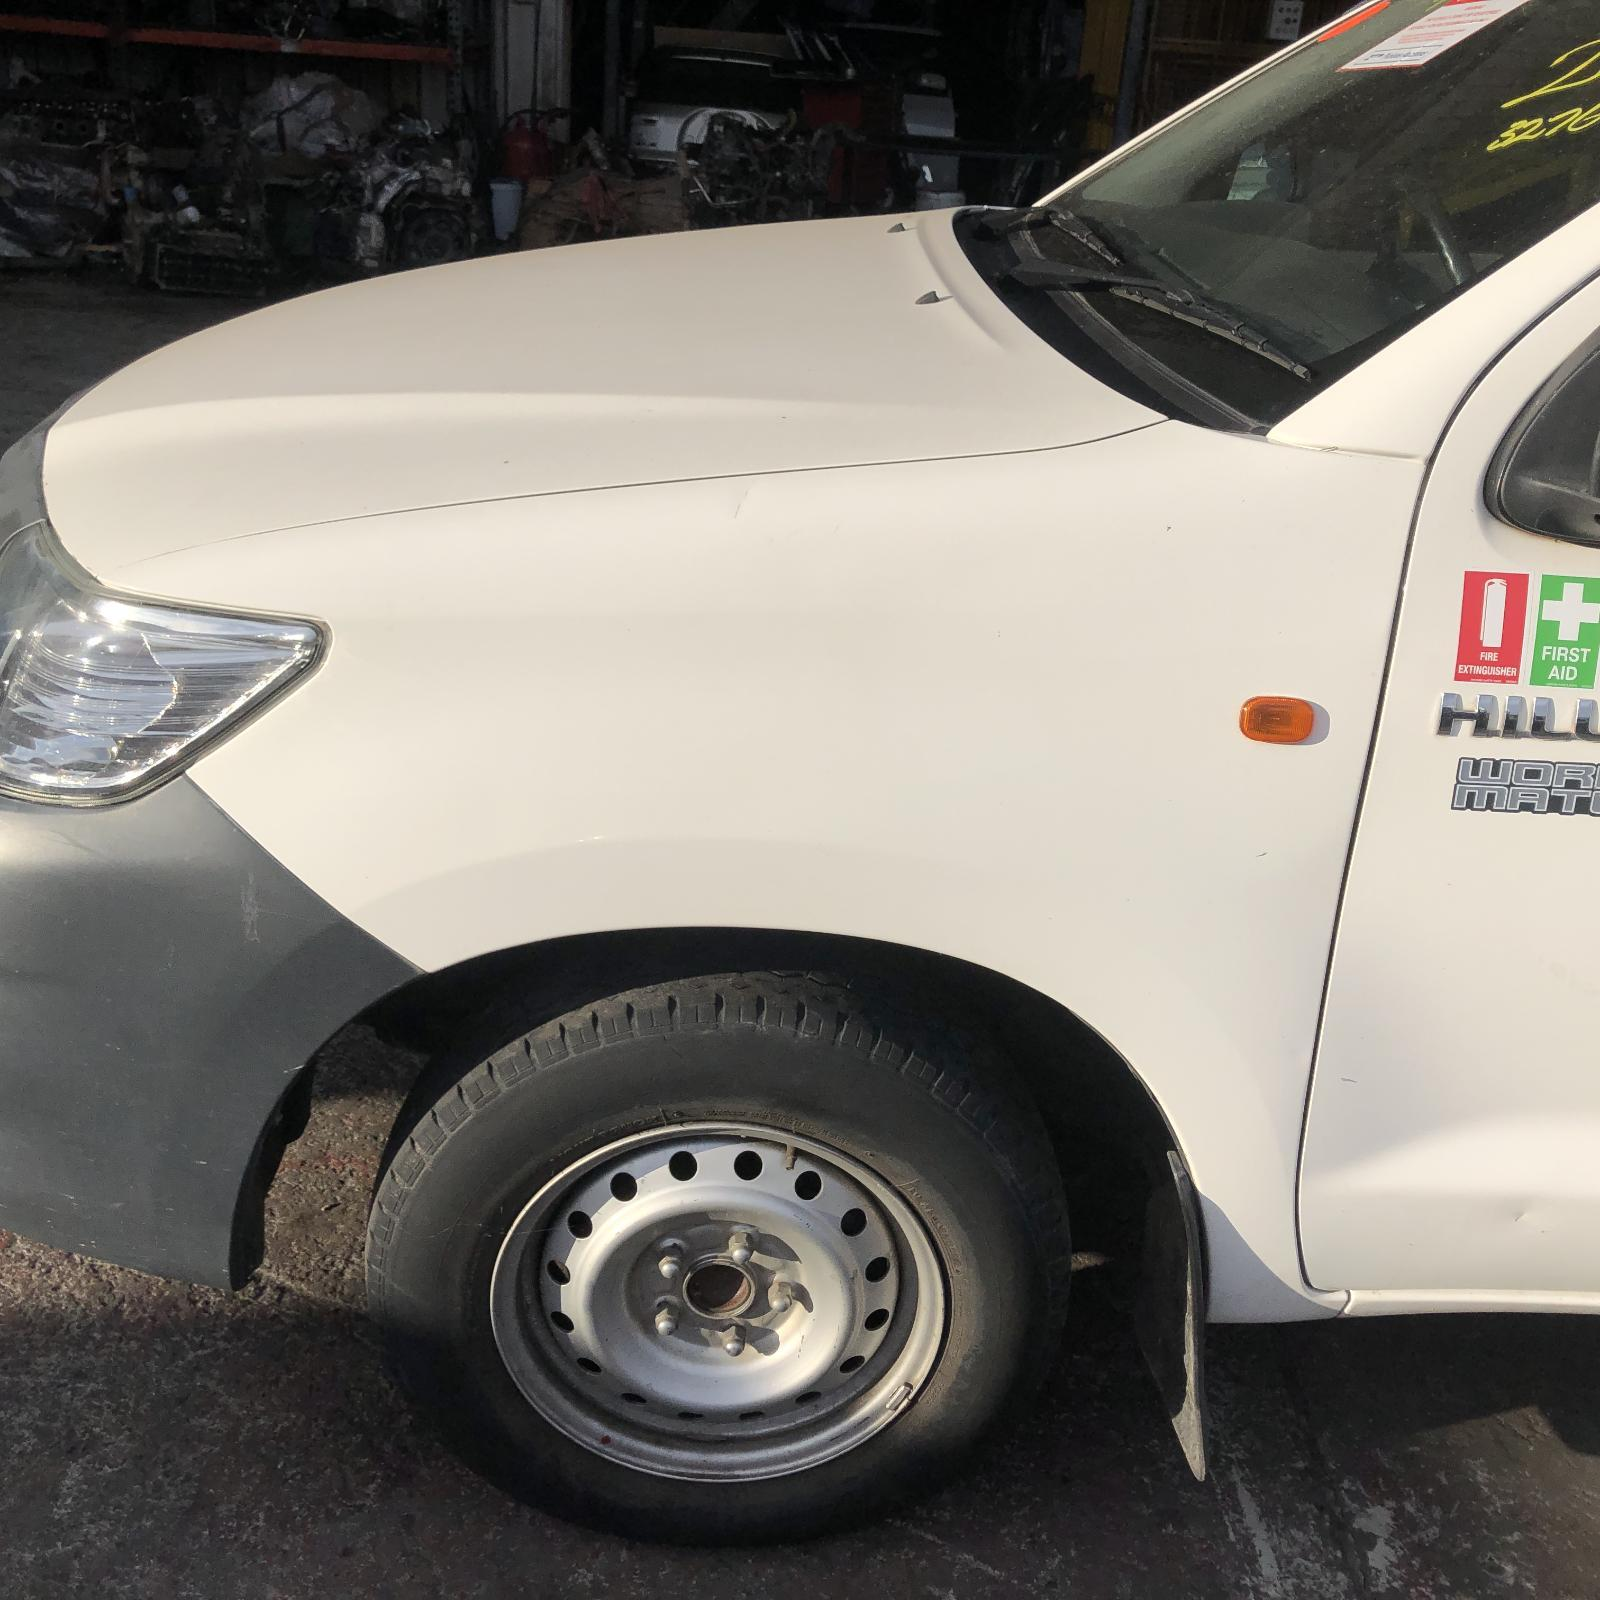 TOYOTA HILUX, Left Guard, NON FLARE, W/ INDICATOR TYPE, 07/11-08/15